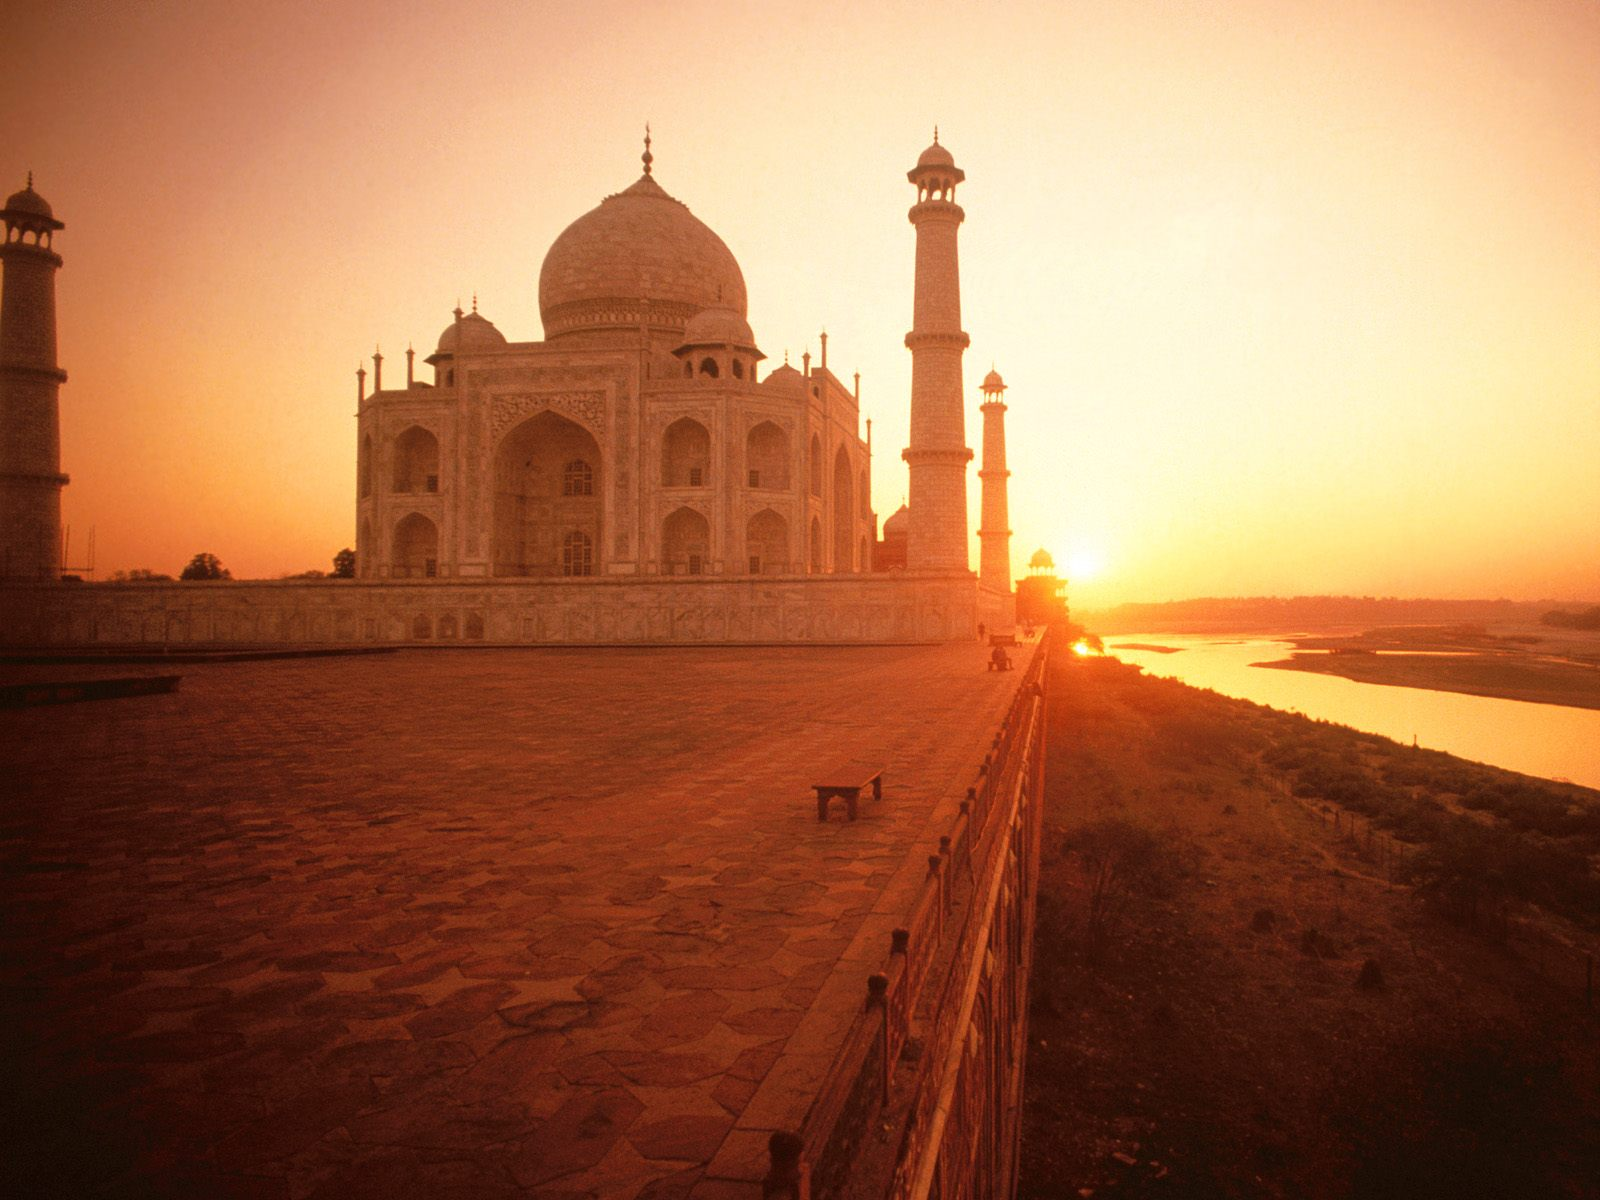 http://3.bp.blogspot.com/-R6WkH99ZR7E/TdpZdMoLZuI/AAAAAAAADxQ/7Oup1mbaYNI/s1600/3066-the-taj-mahal-at-sunset%252C-india-wallpaper.jpg